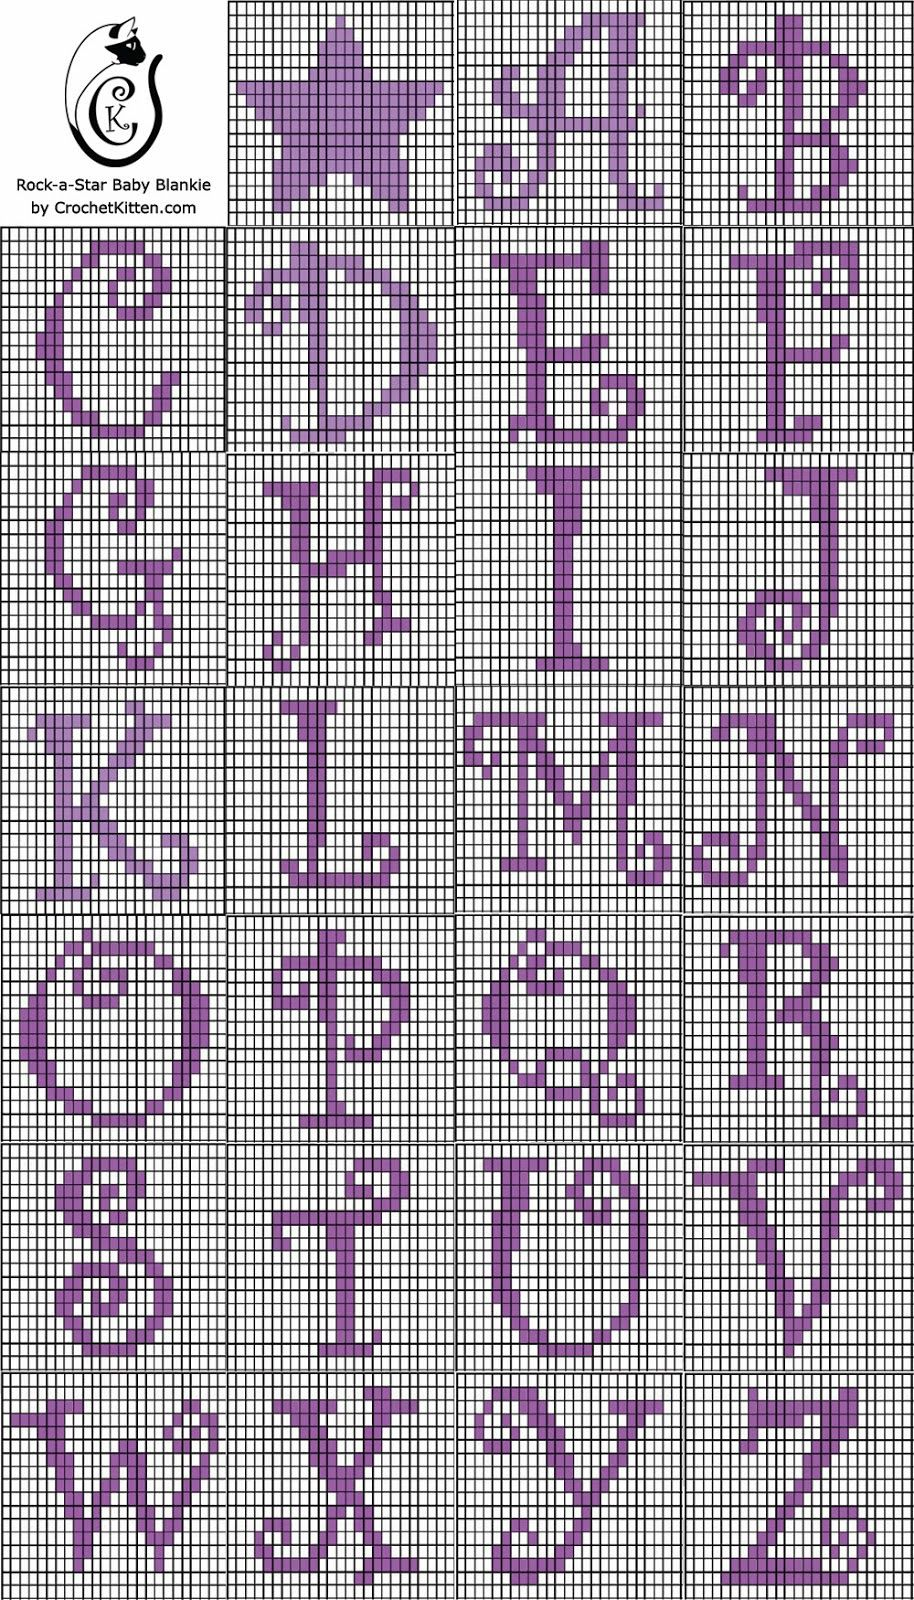 Alphabet Chart For Tapestry Crochet Crochet Stitch Patterns